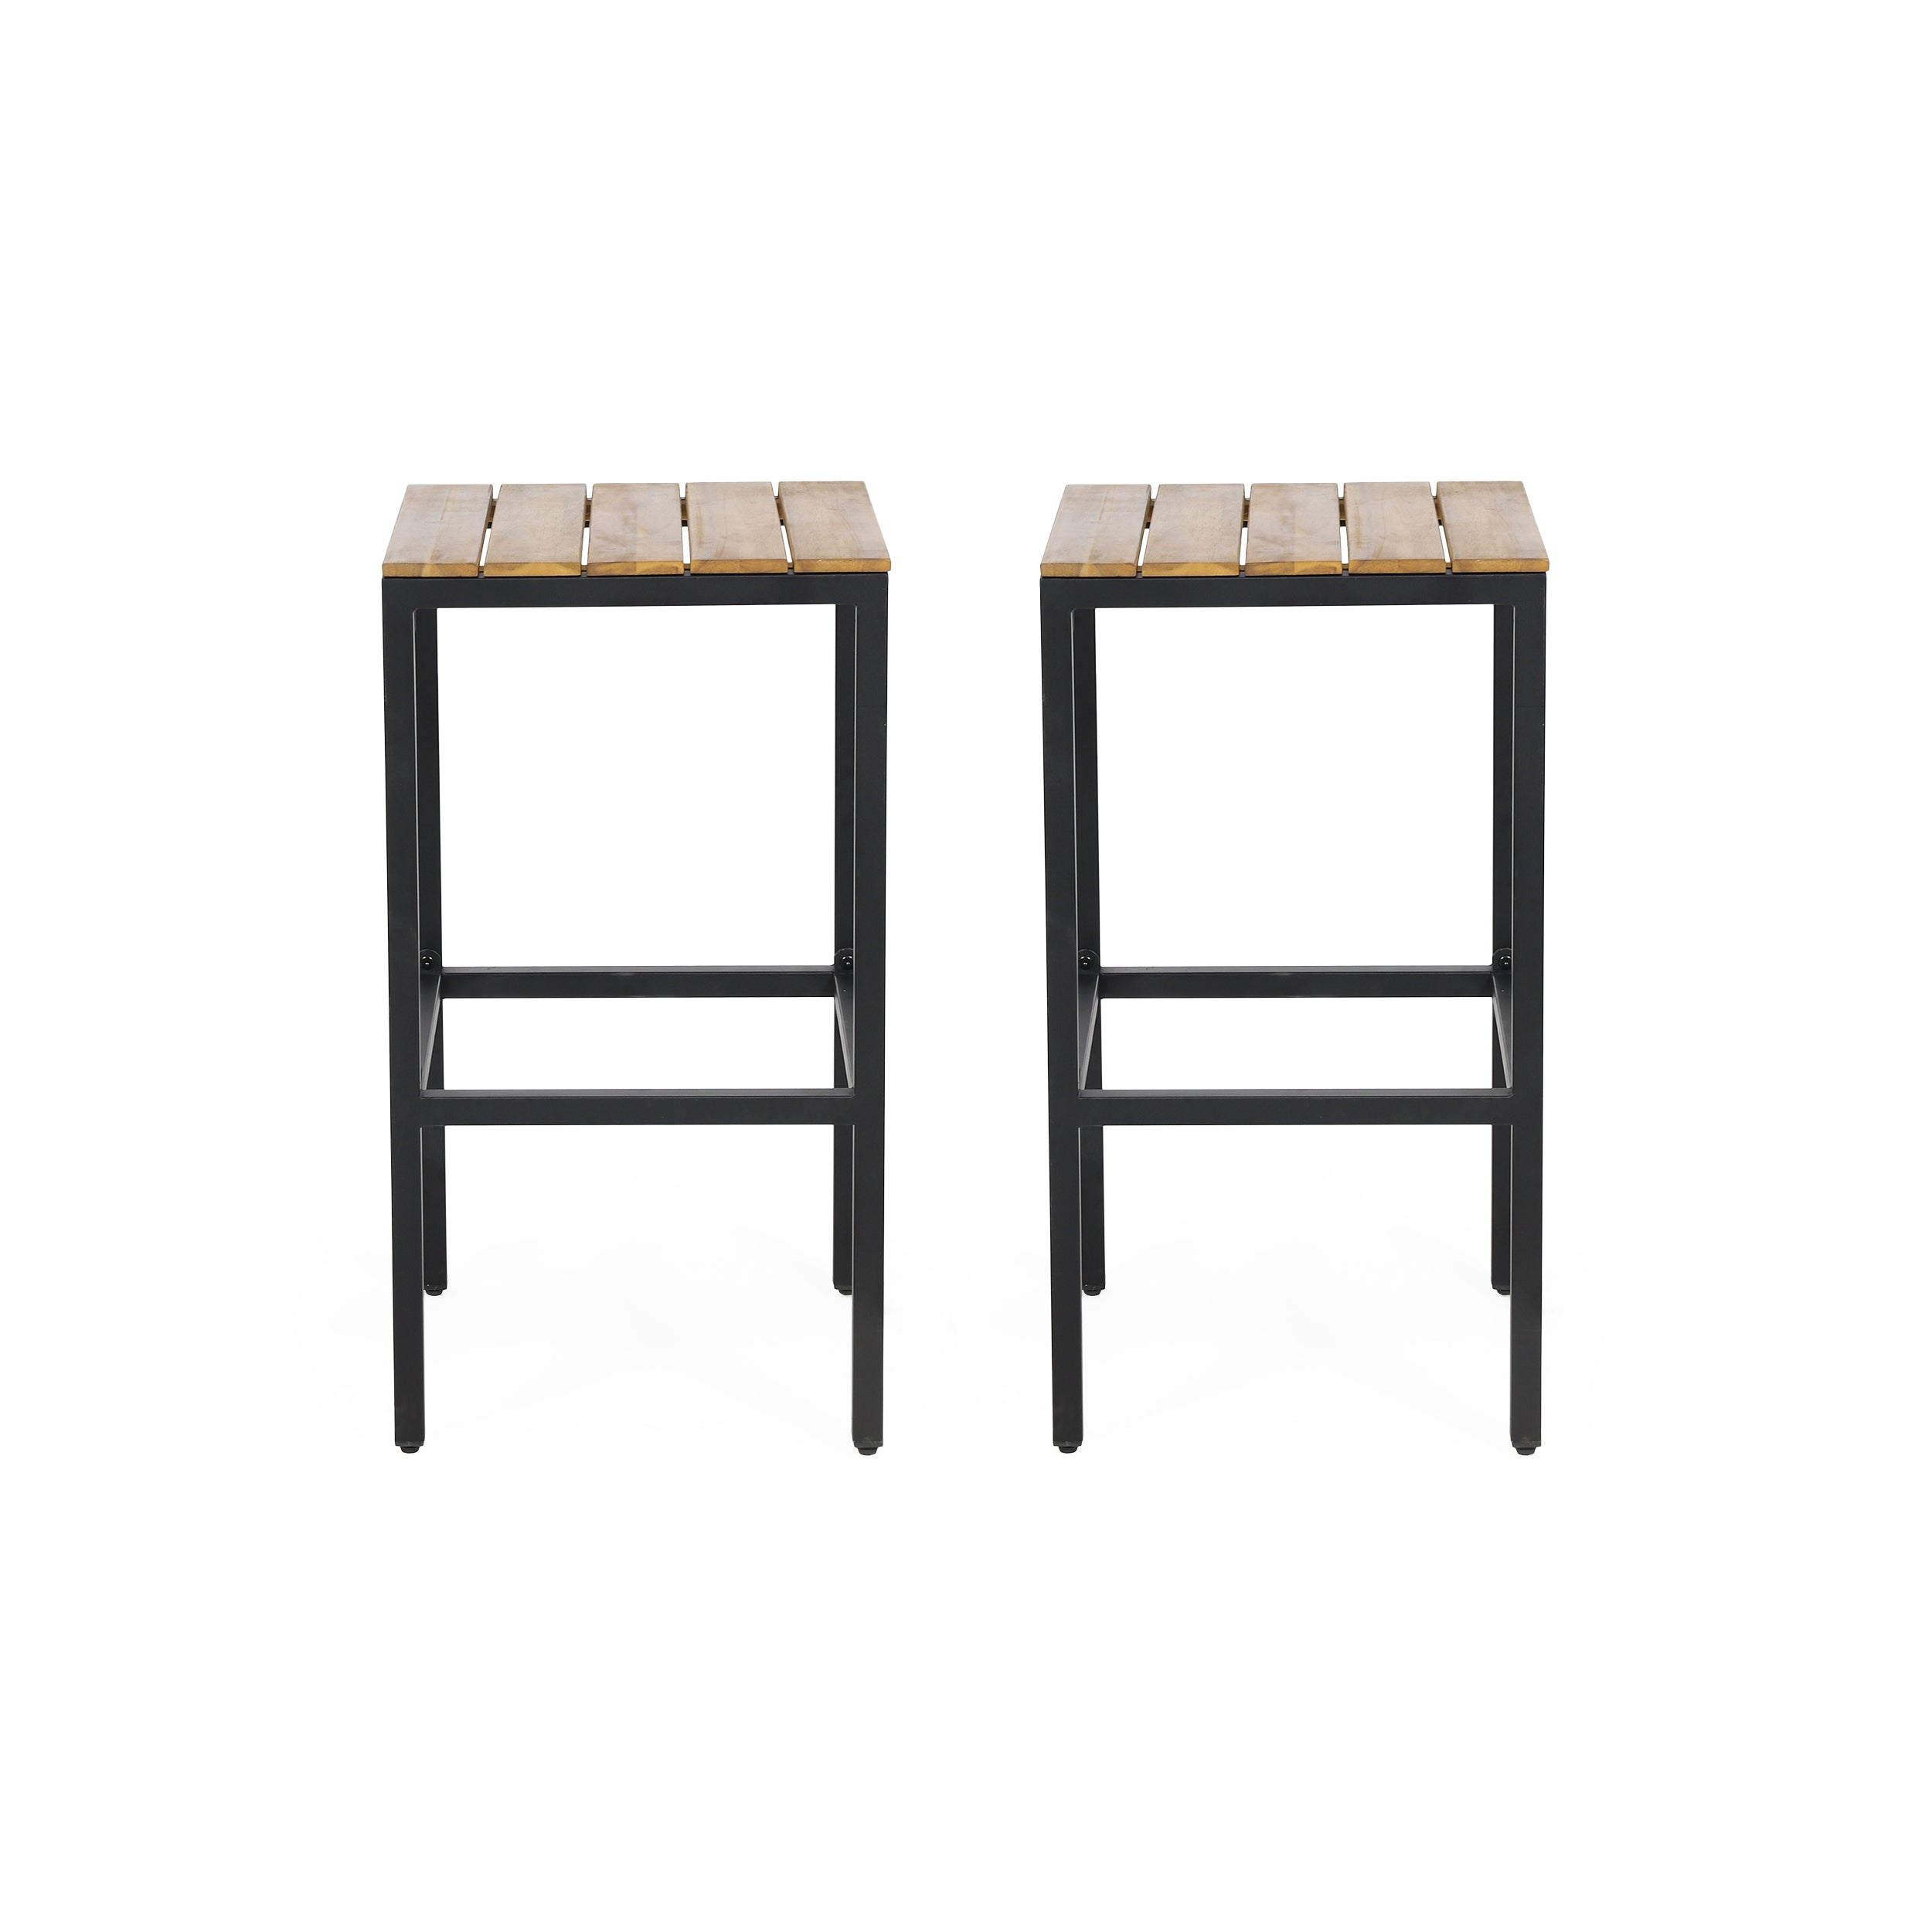 Arath Outdoor Modern Industrial Acacia Wood Bar Stools Set of 2 BlackGray